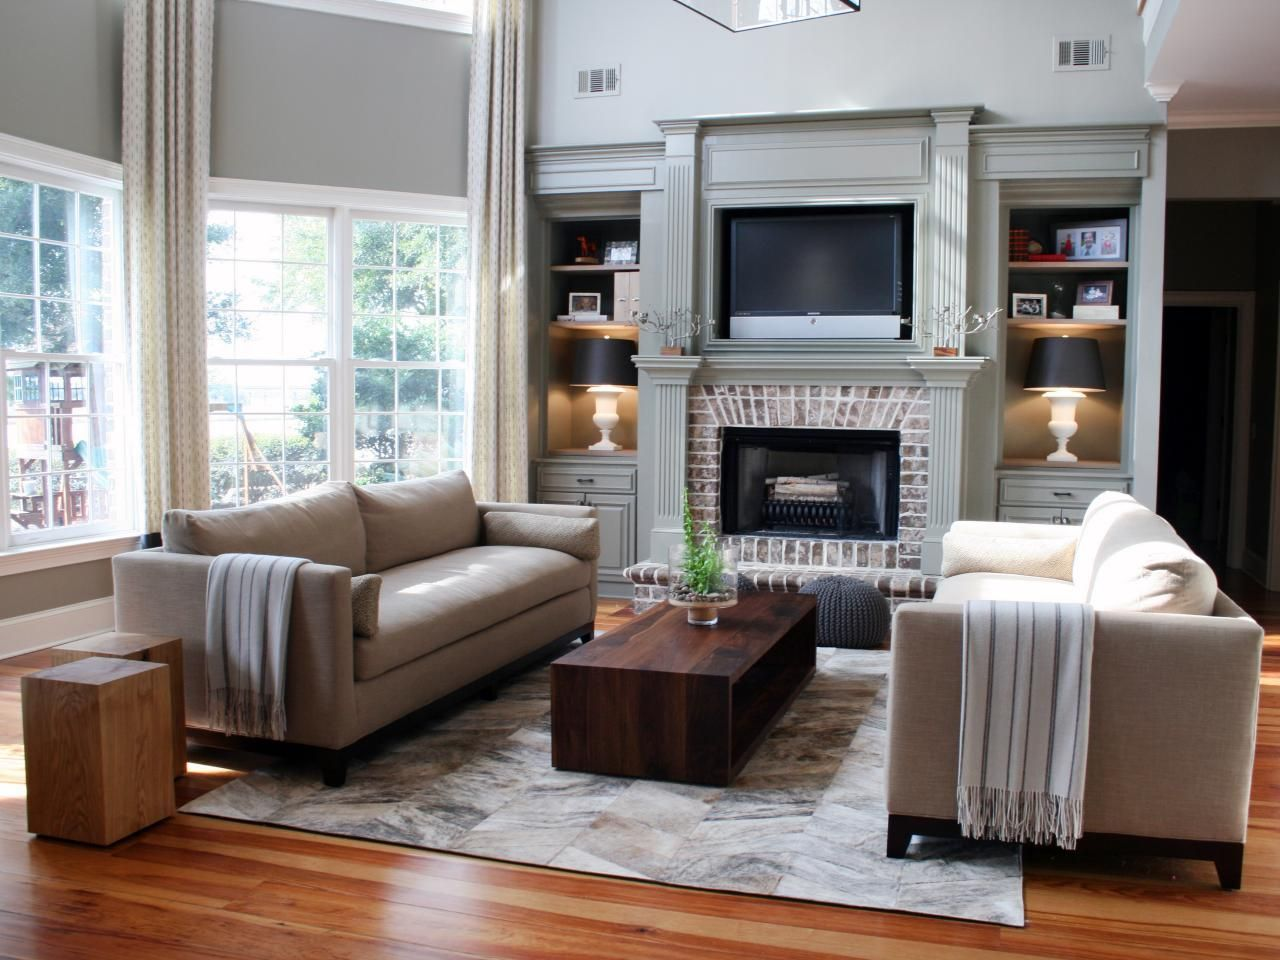 Exclusive Interior Design Styles Popular Interior Design Living Room With Fireplace Family Room Design Living room decor styles